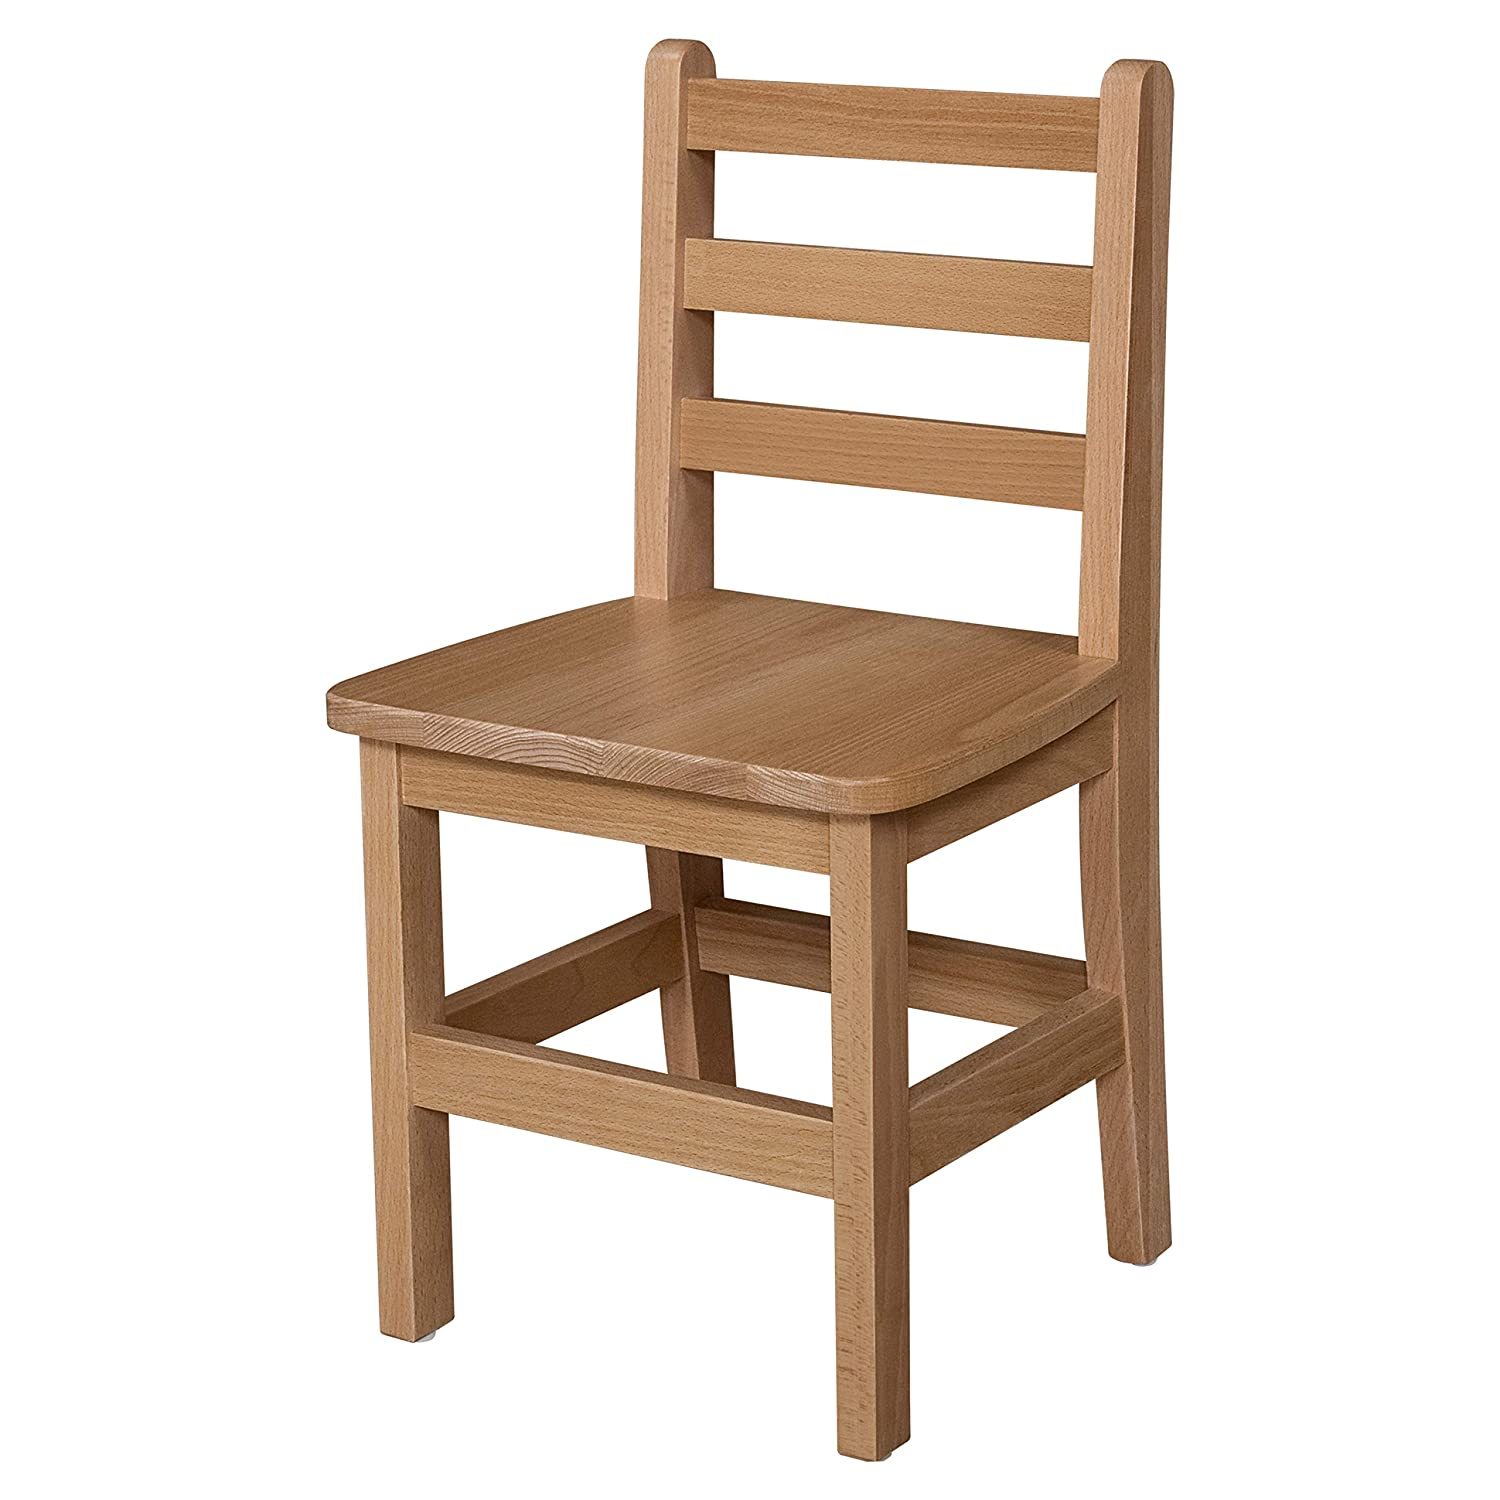 Wood Designs WD122 Child&122;s Chair, 122